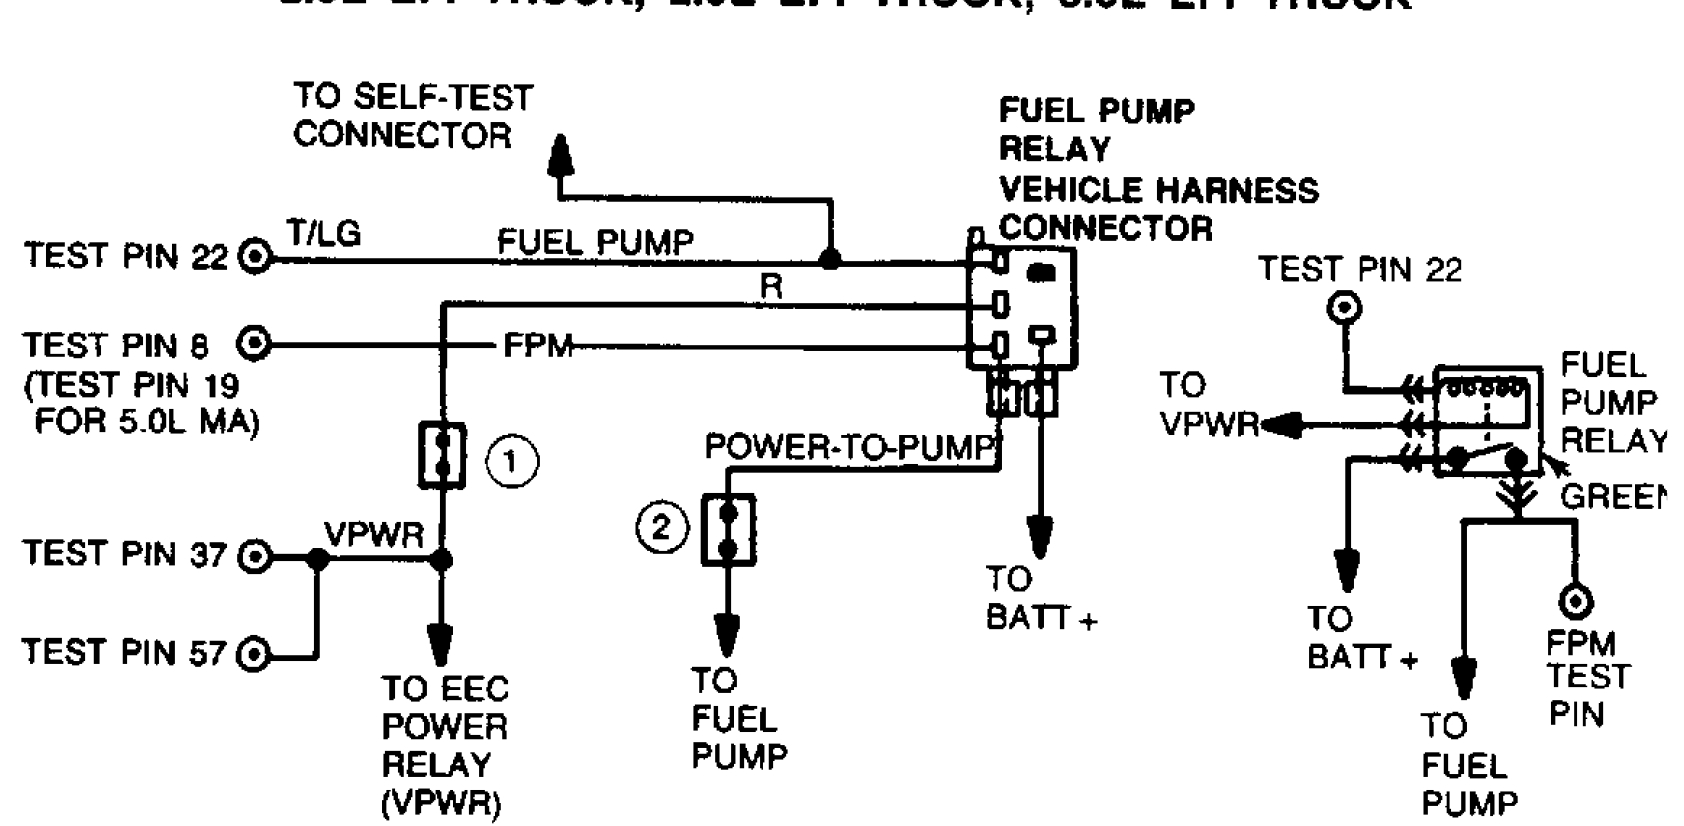 original eec iv wiring diagram eec iv bracket \u2022 free wiring diagrams life 1989 ford ranger wiring diagram at bayanpartner.co